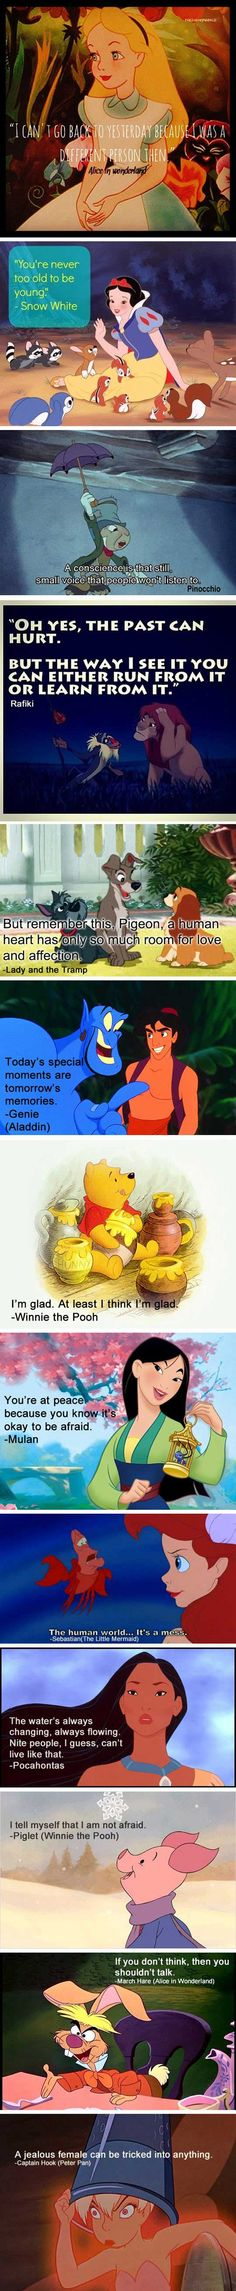 Wise sayings from Disney.